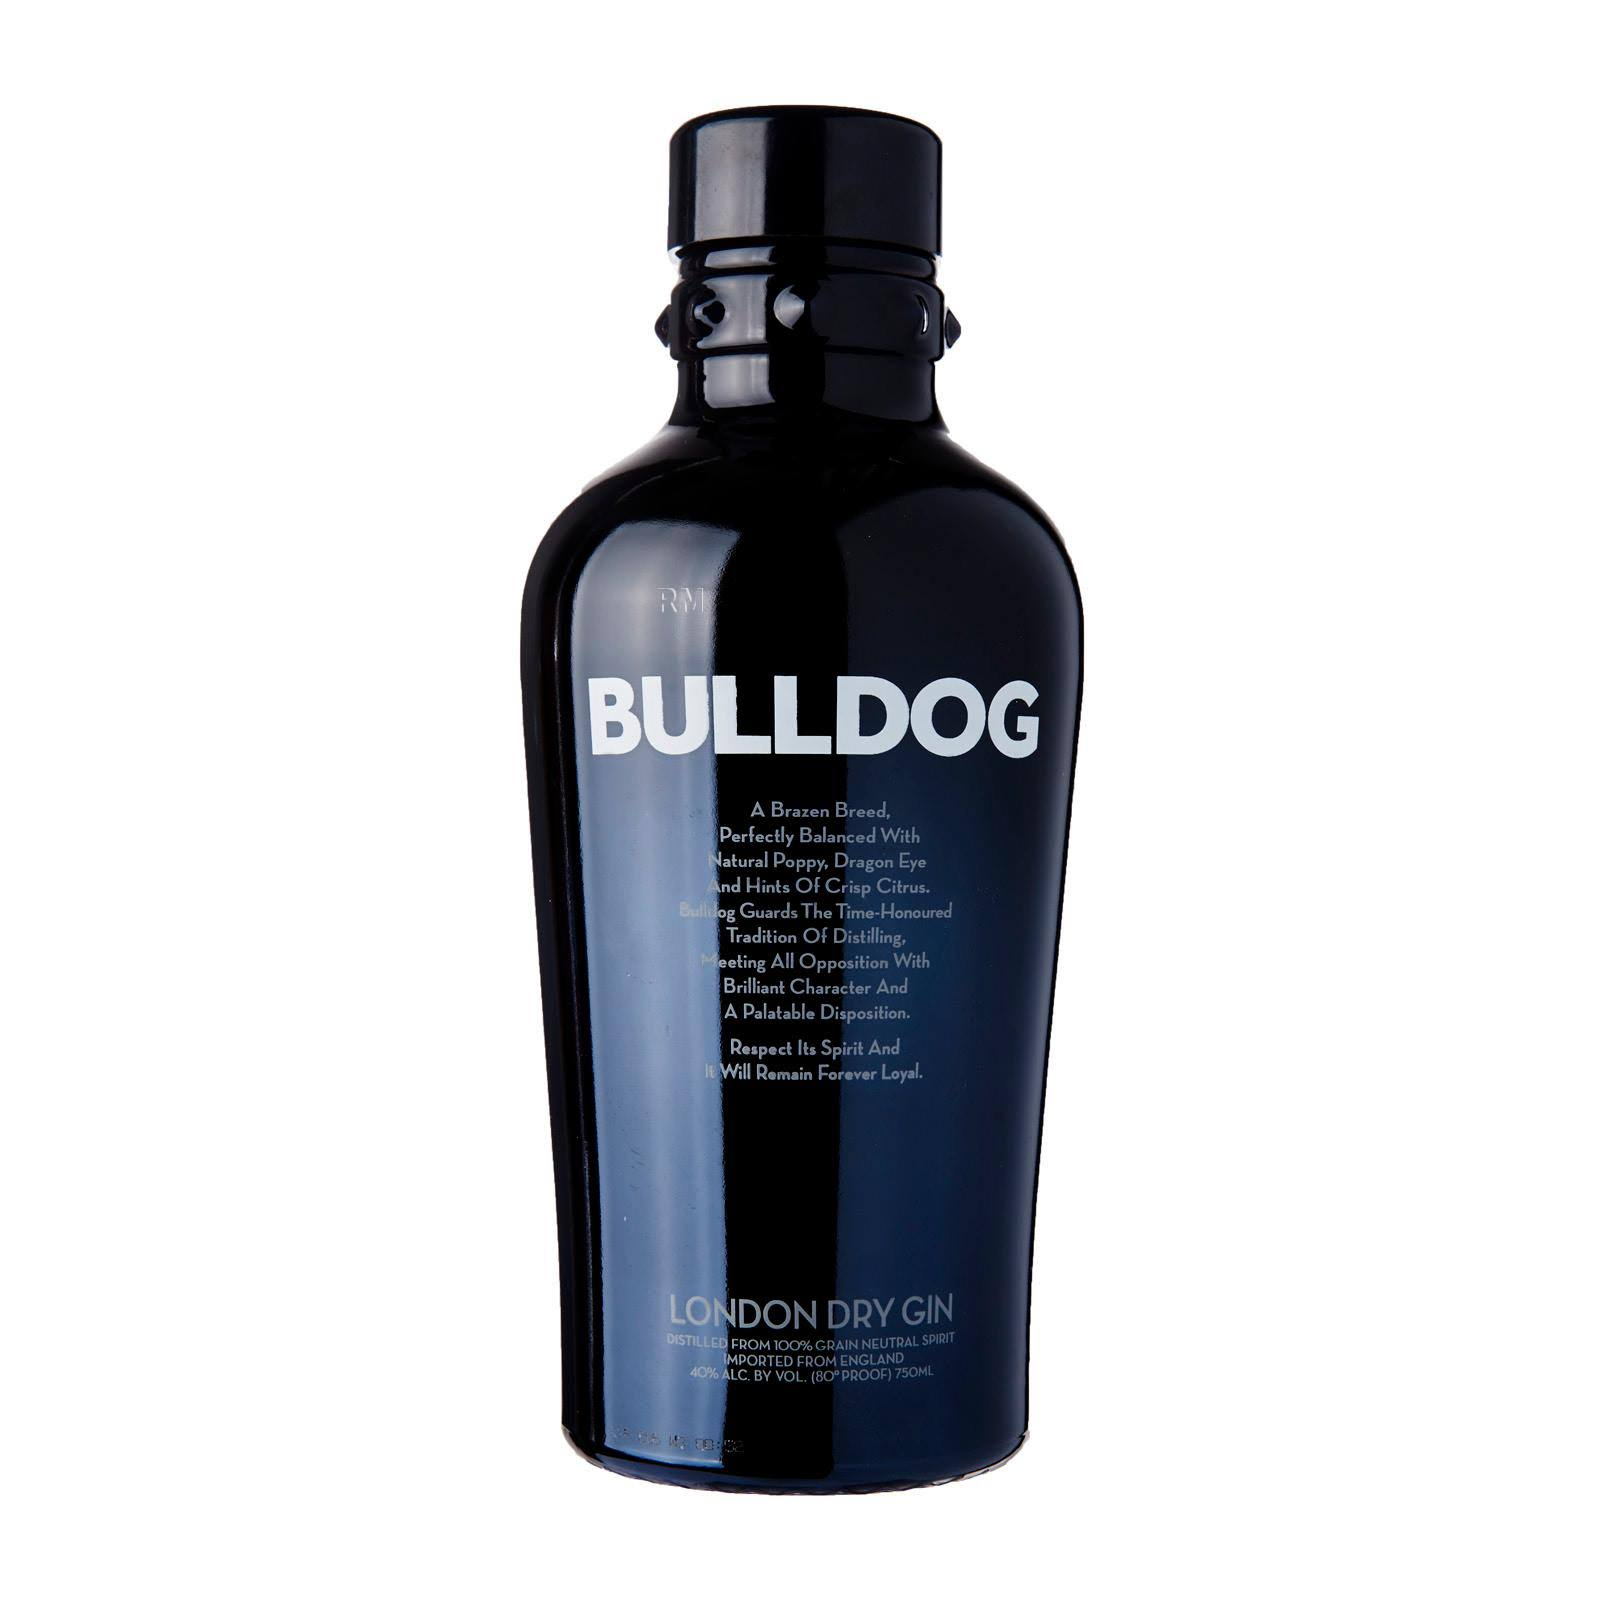 Bulldog London Dry Gin - 750ml